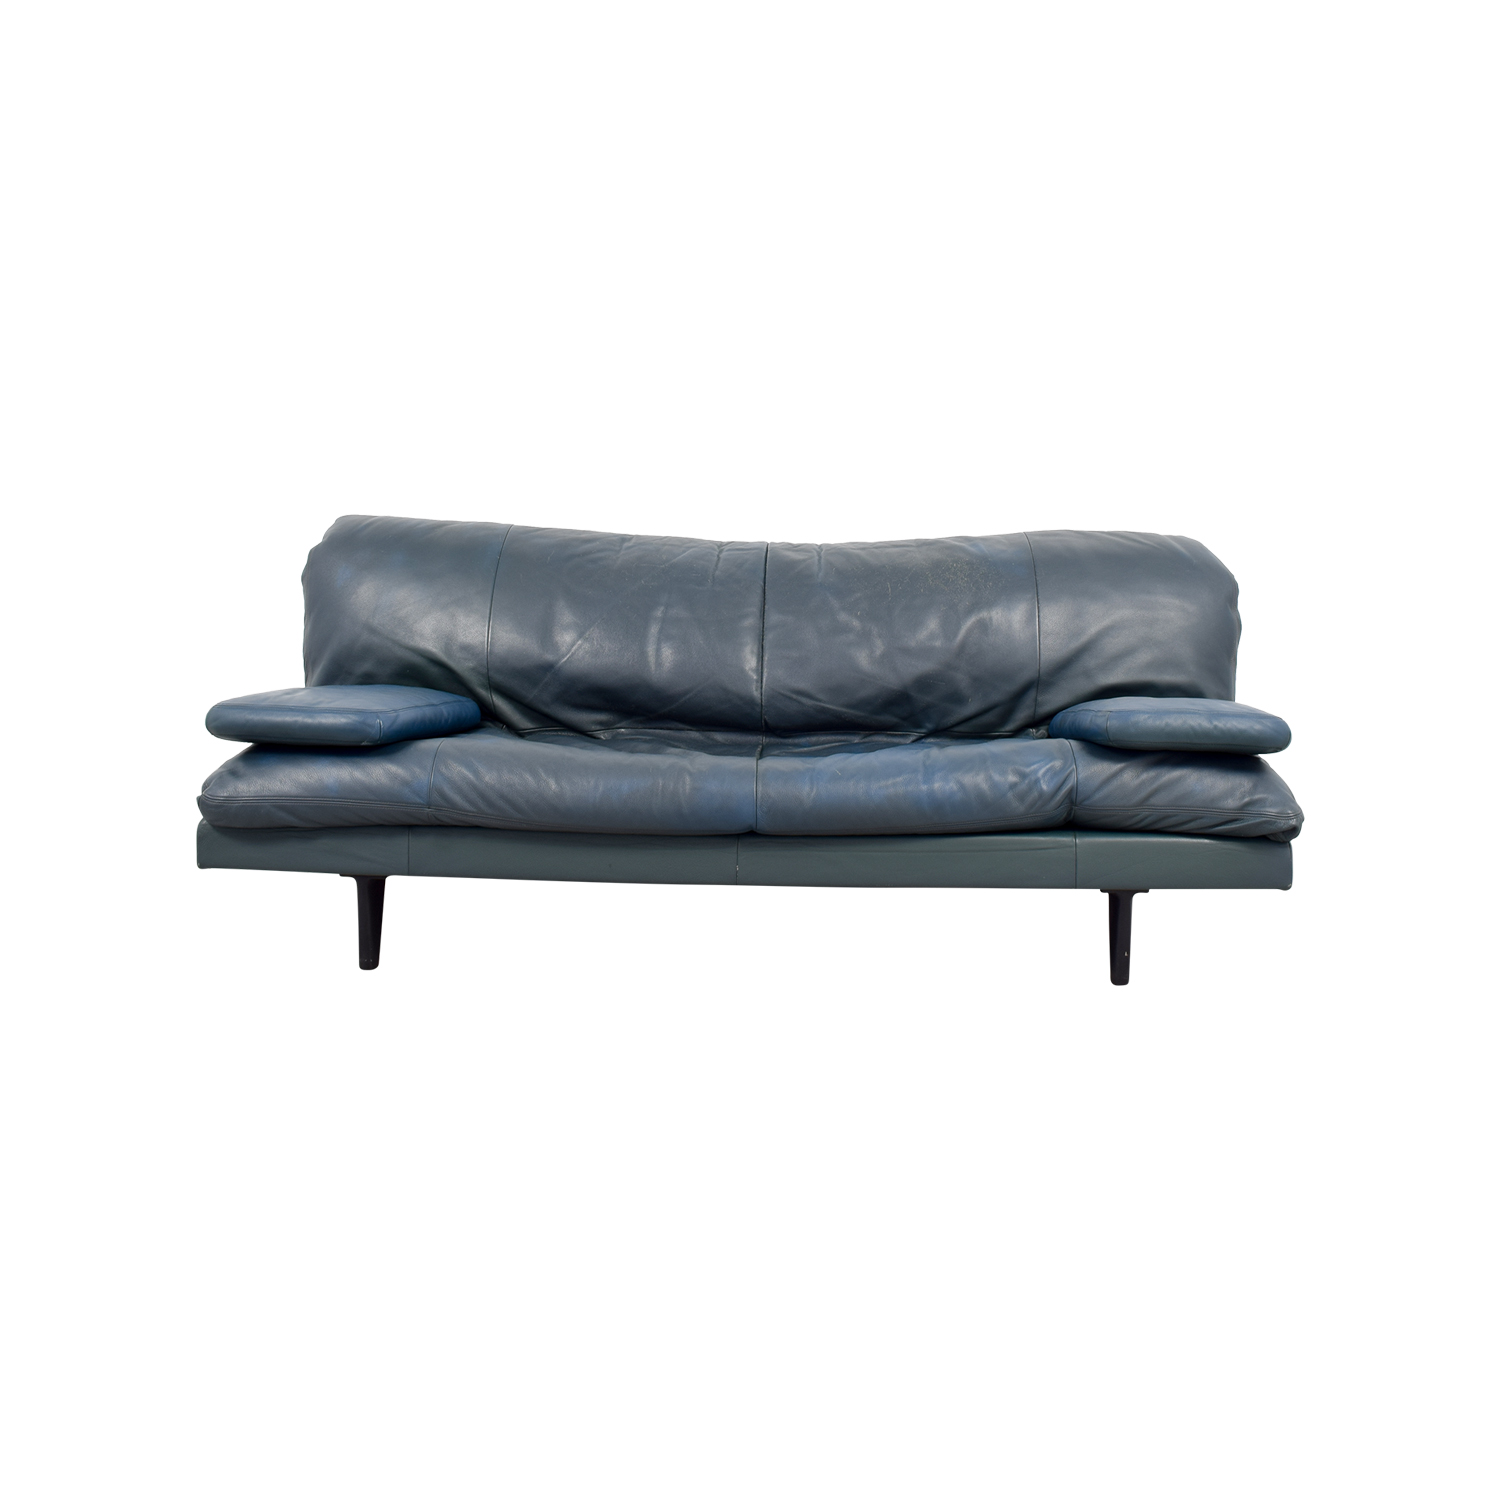 90% OFF - Domus Design Center DDC Blue Leather Couch / Sofas